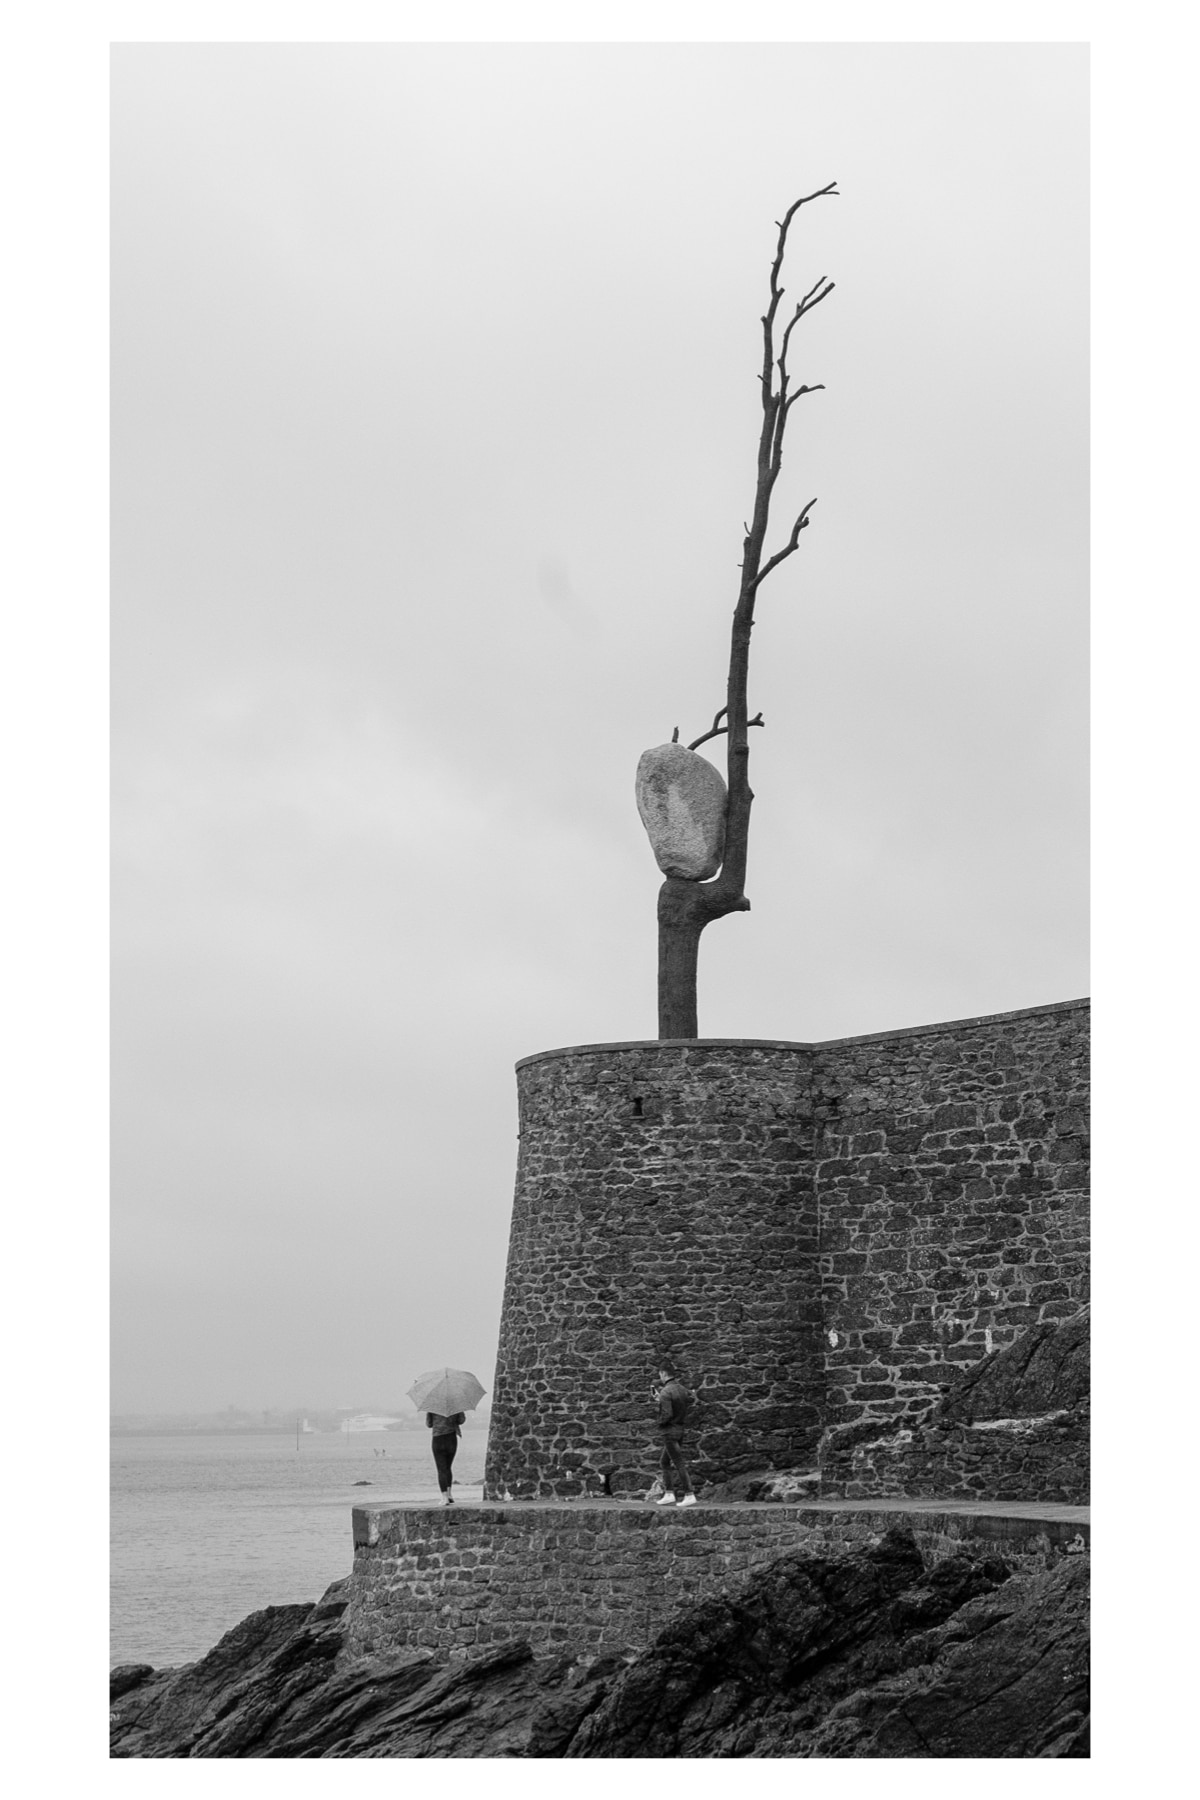 Monochrome photo of a couple walking and taking photos just below the art installation of a rock on a tree.